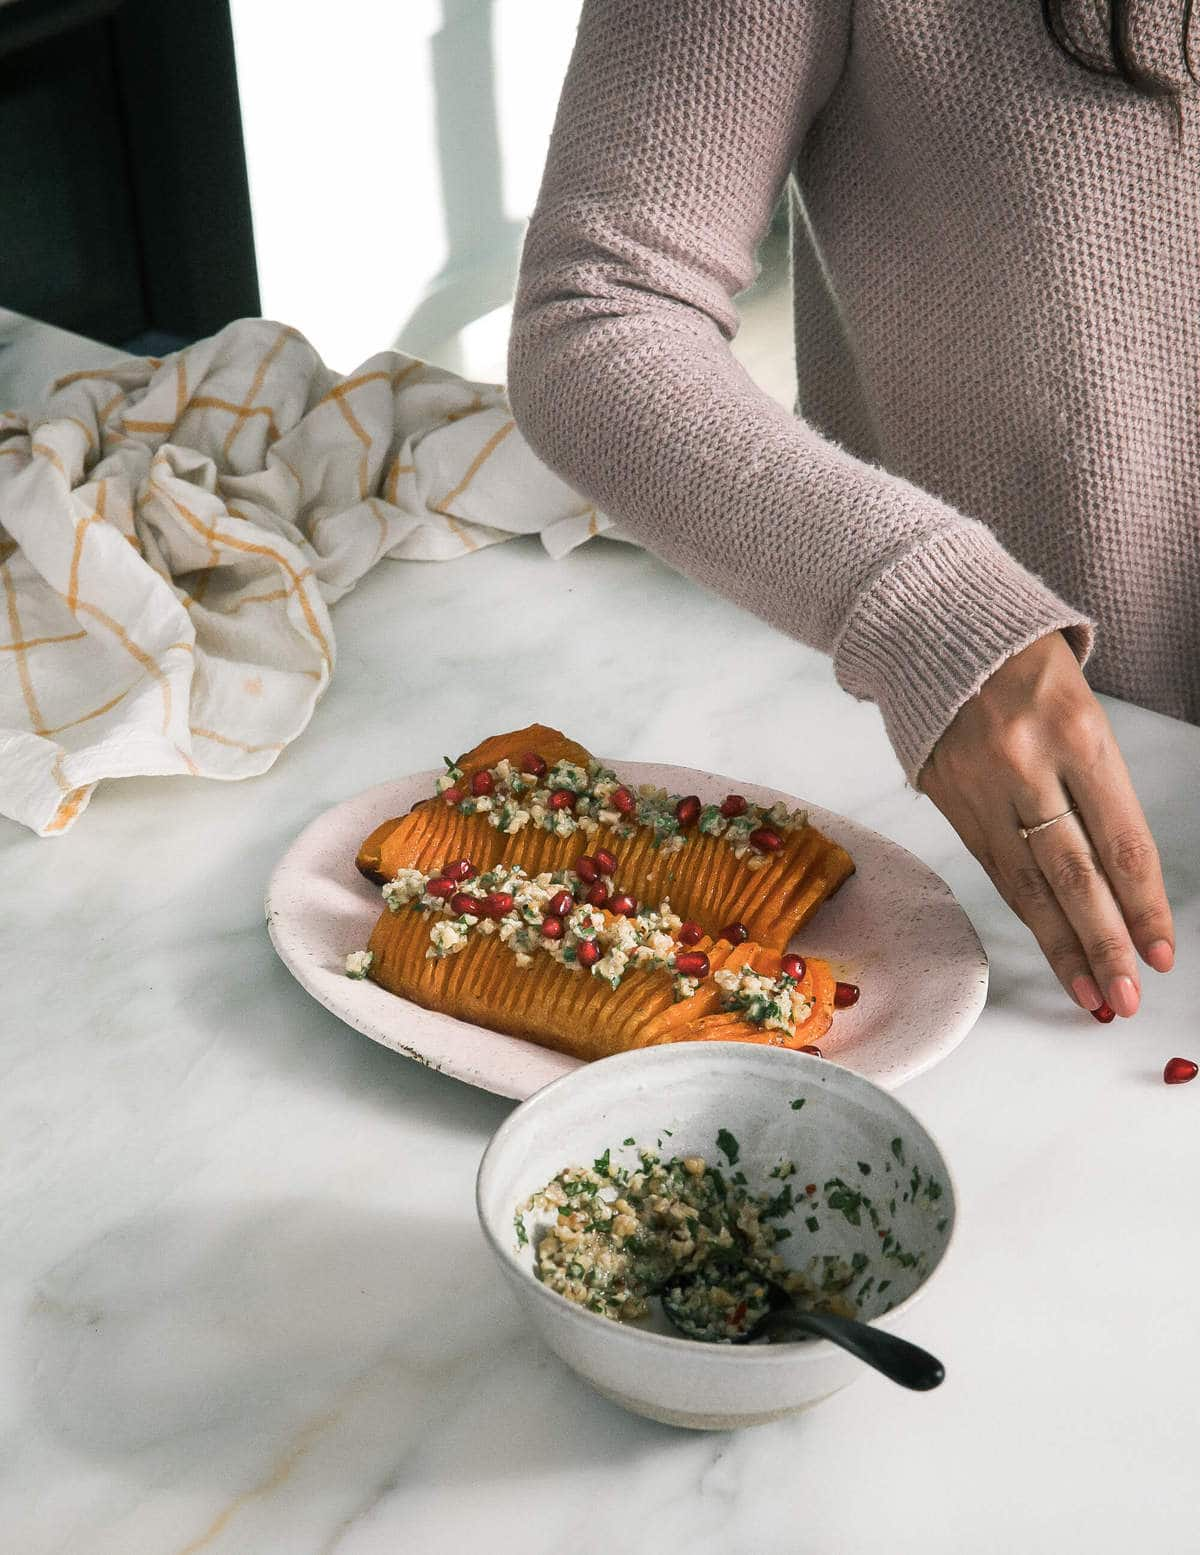 Hasselback Butternut Squash with Walnut Gremolata